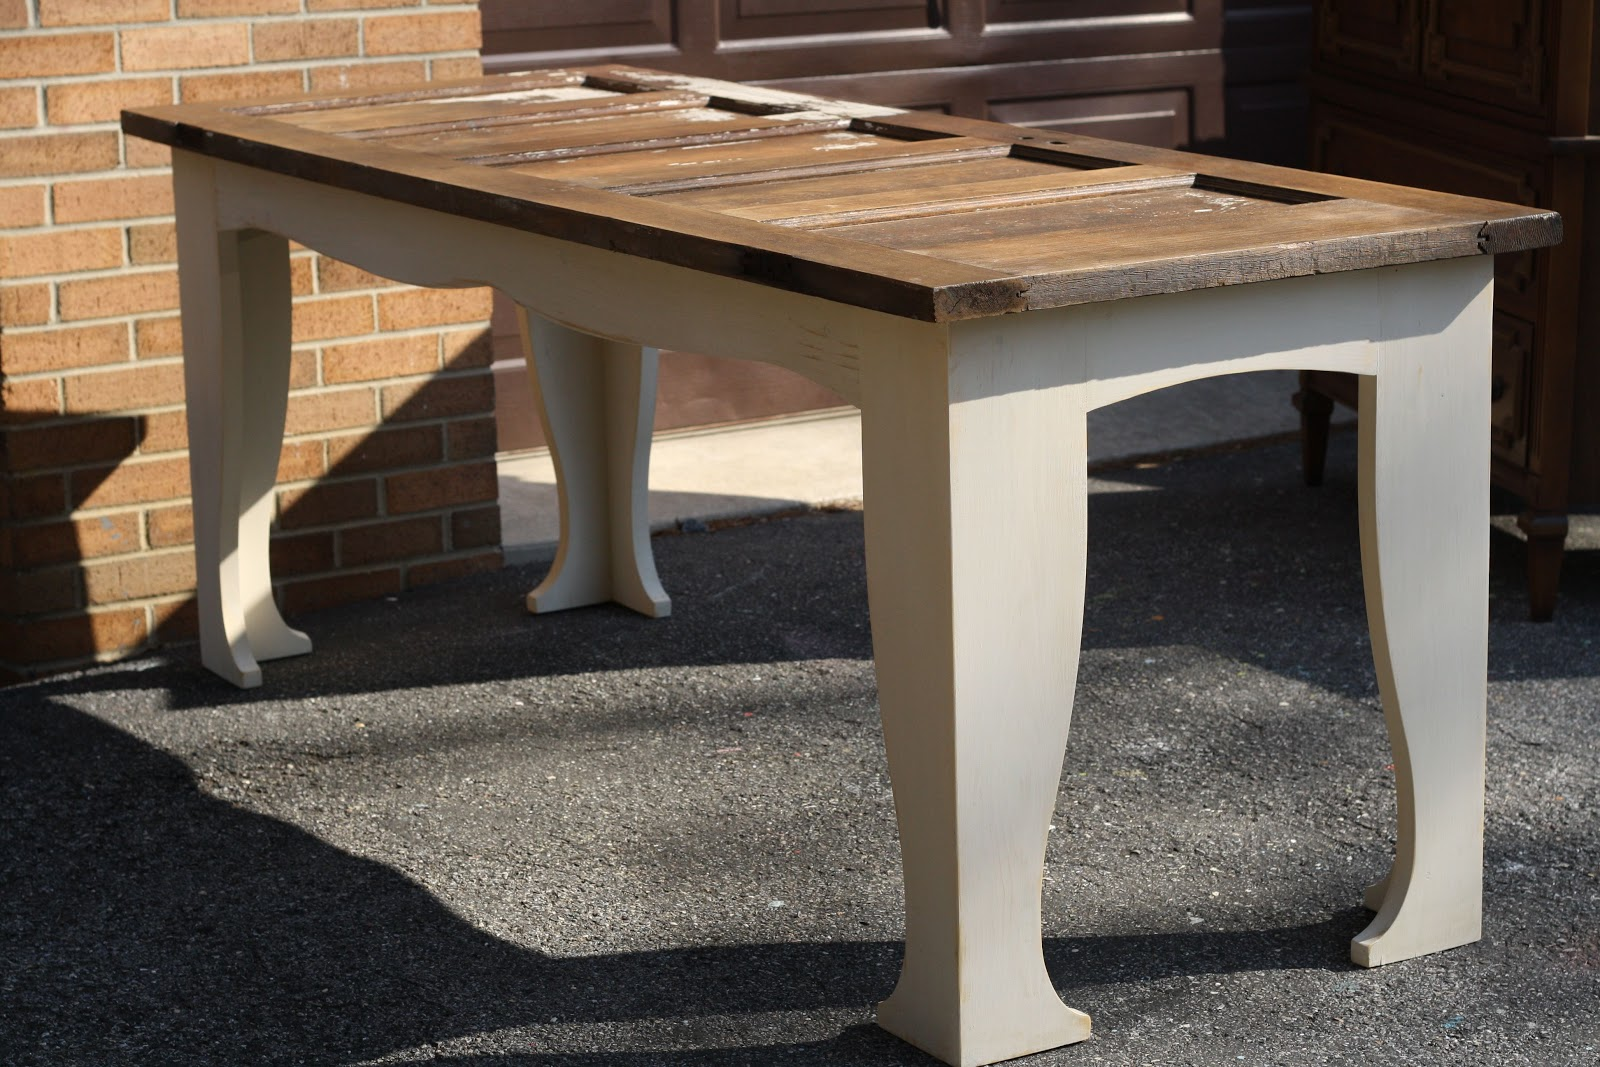 Amazing Door Table I Showed You A Couple Weeks Ago That Travis Built